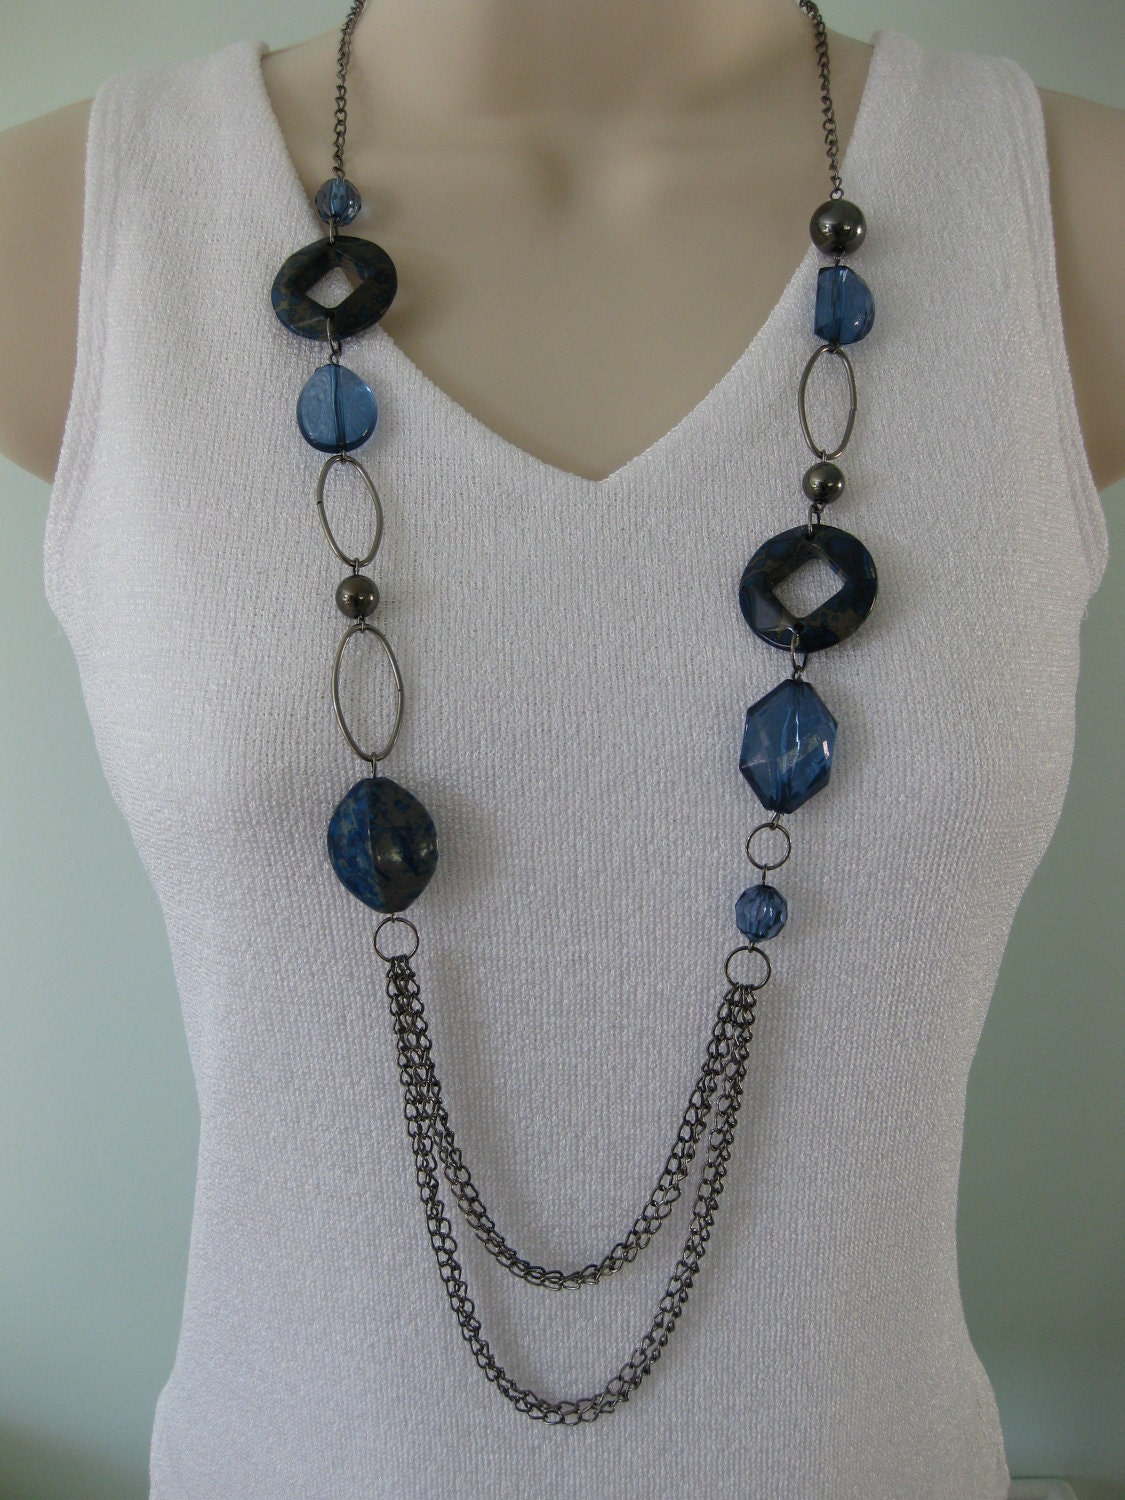 Enjoy free shipping and easy returns every day at Kohl's. Find great deals on Womens Blue Necklaces at Kohl's today!